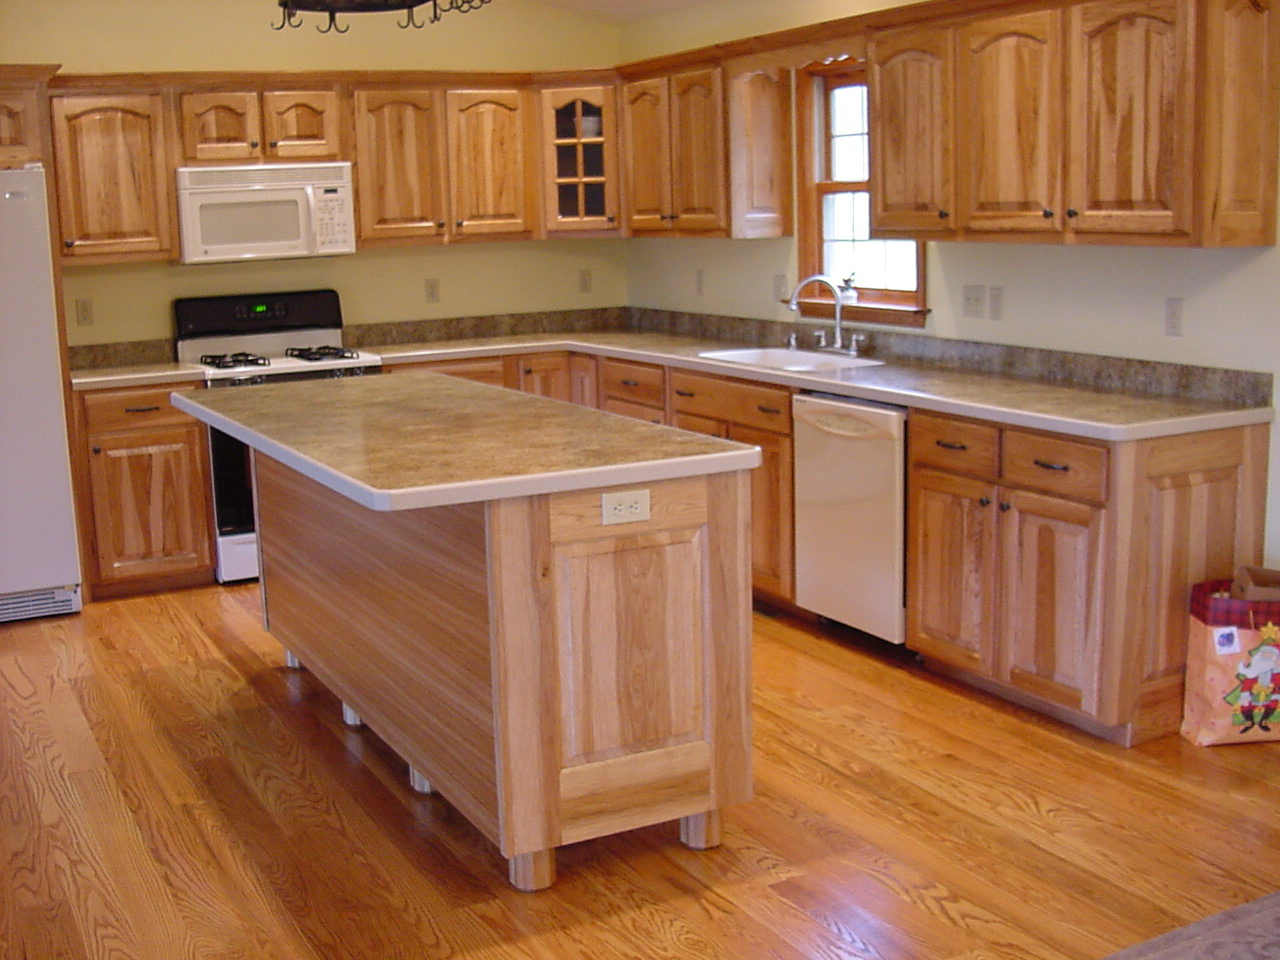 countertops cabinets what article pin all white with kitchen look countertop design best about colors for looks color